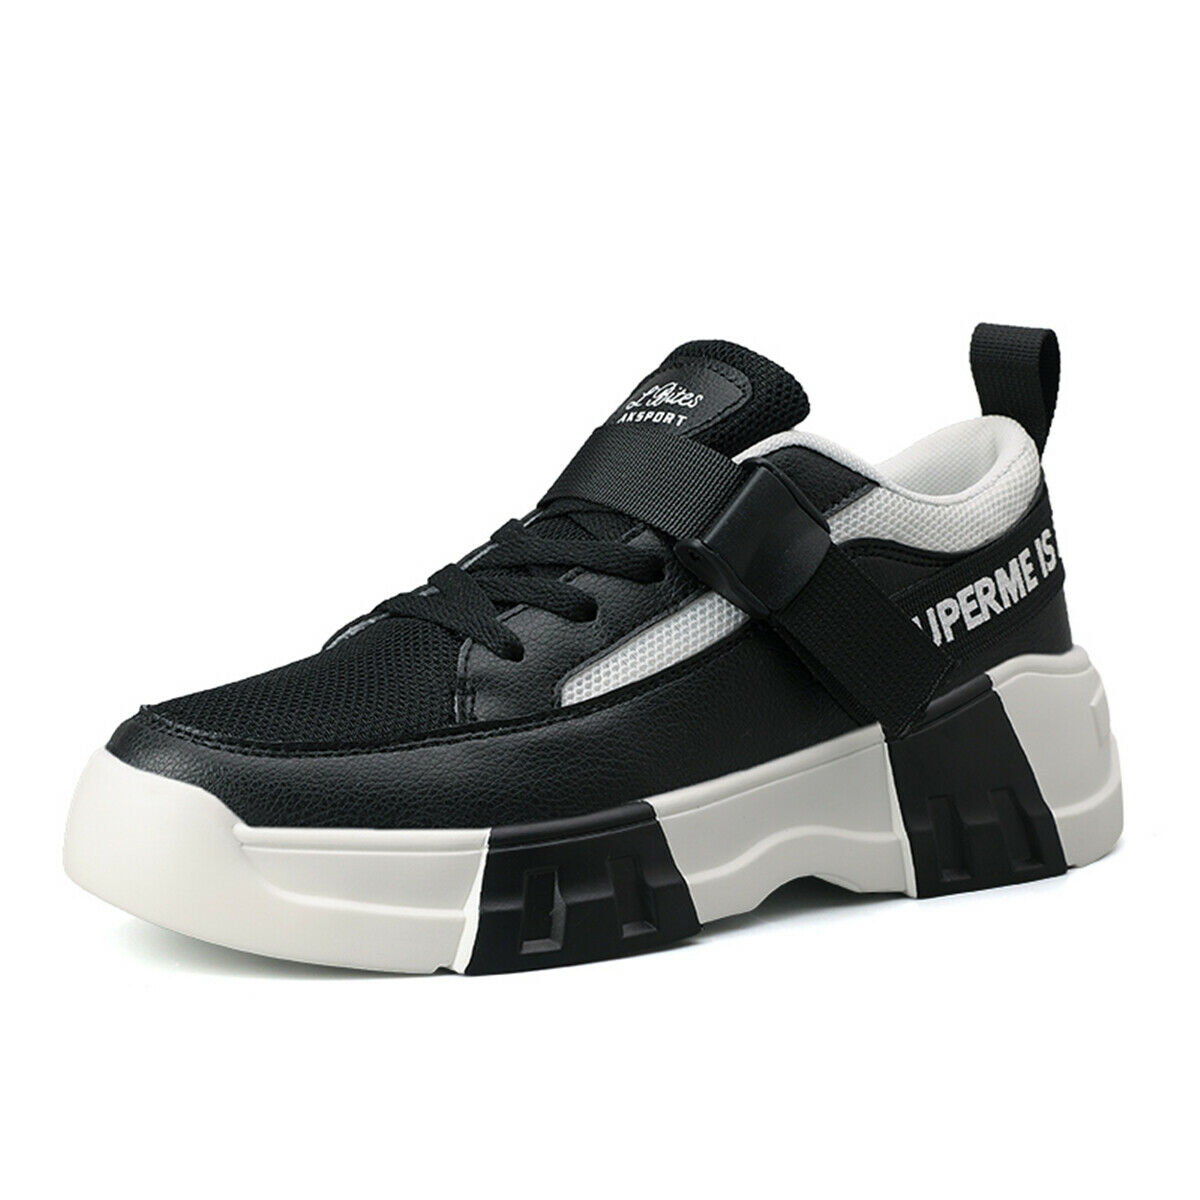 2019 New Mens Breathable Low Top Platform Running shoes Gym Walking Casual shoes